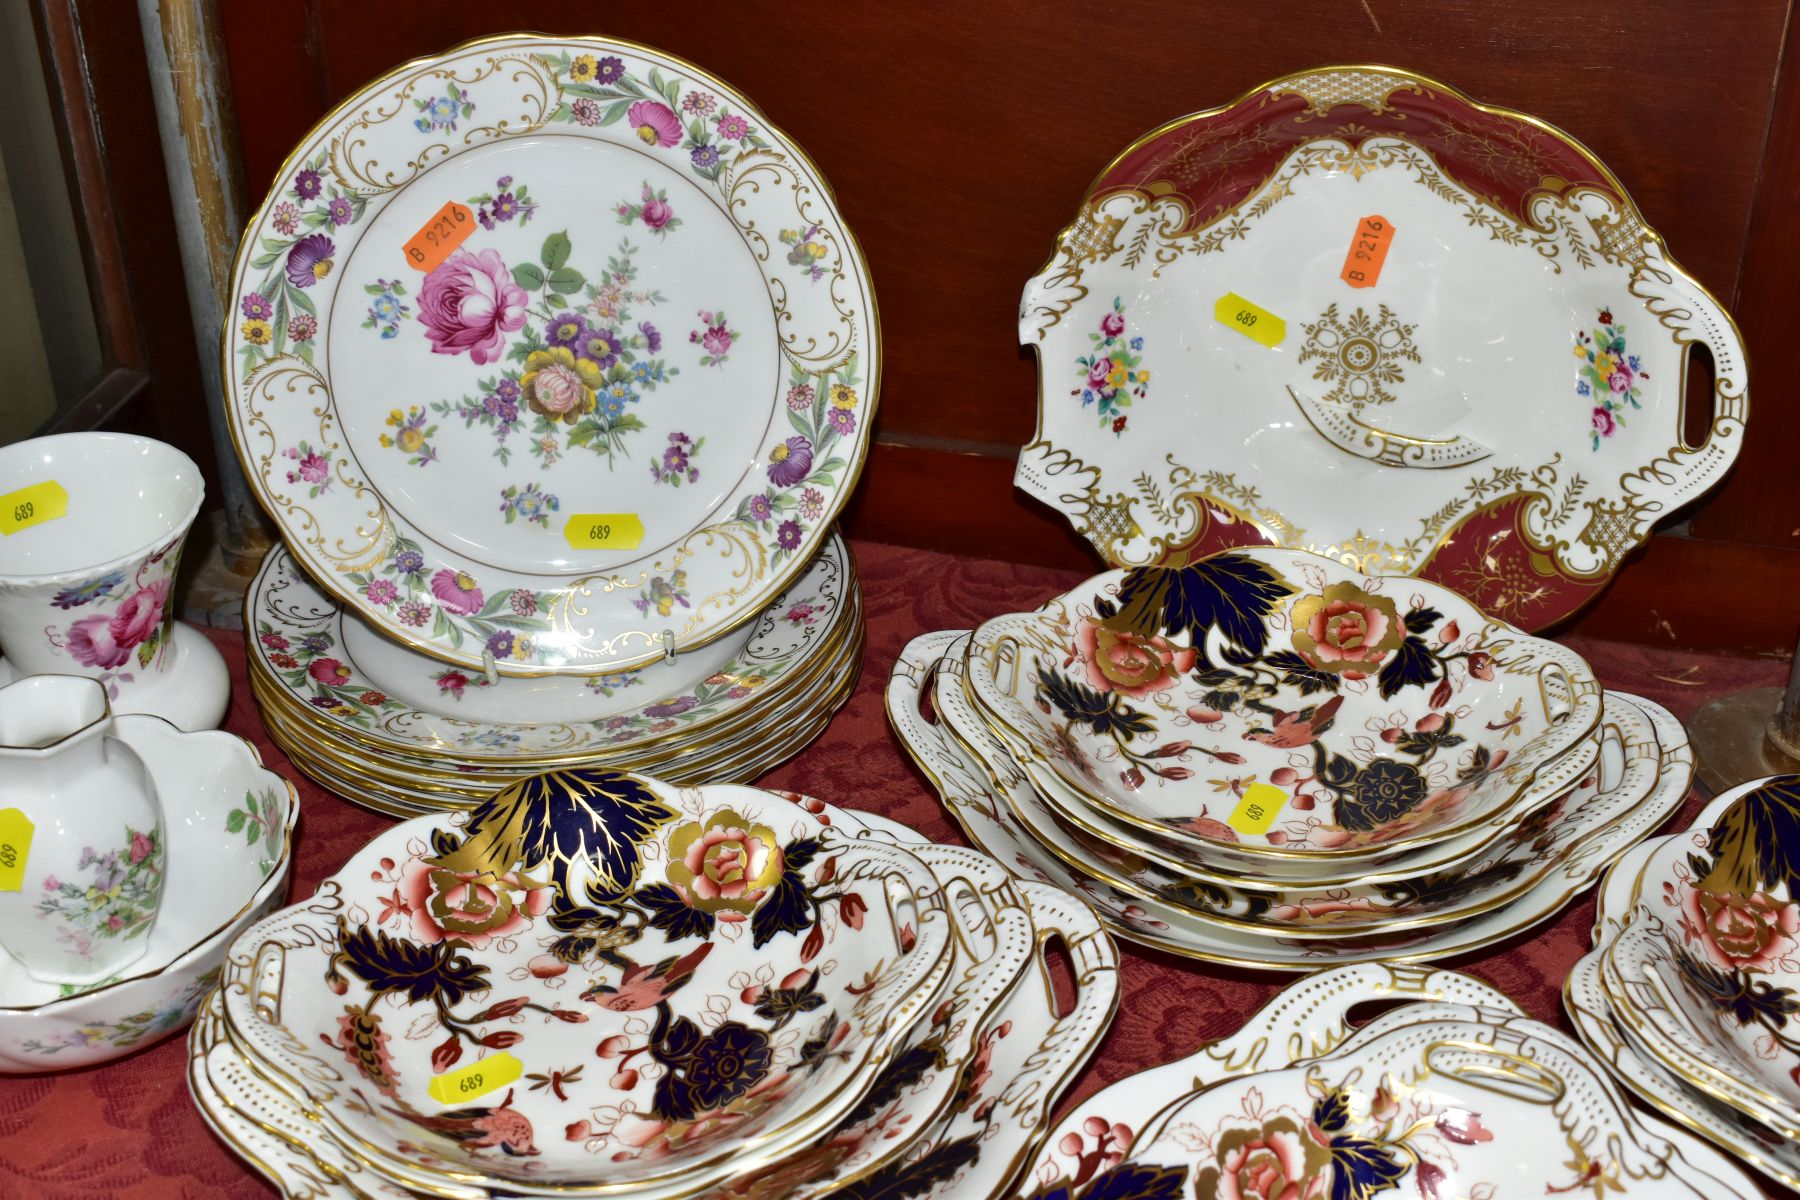 DECORATIVE CERAMICS, ETC, to include Royal Crown Derby 'Derby Posies' pintrays trinket box, - Image 5 of 13